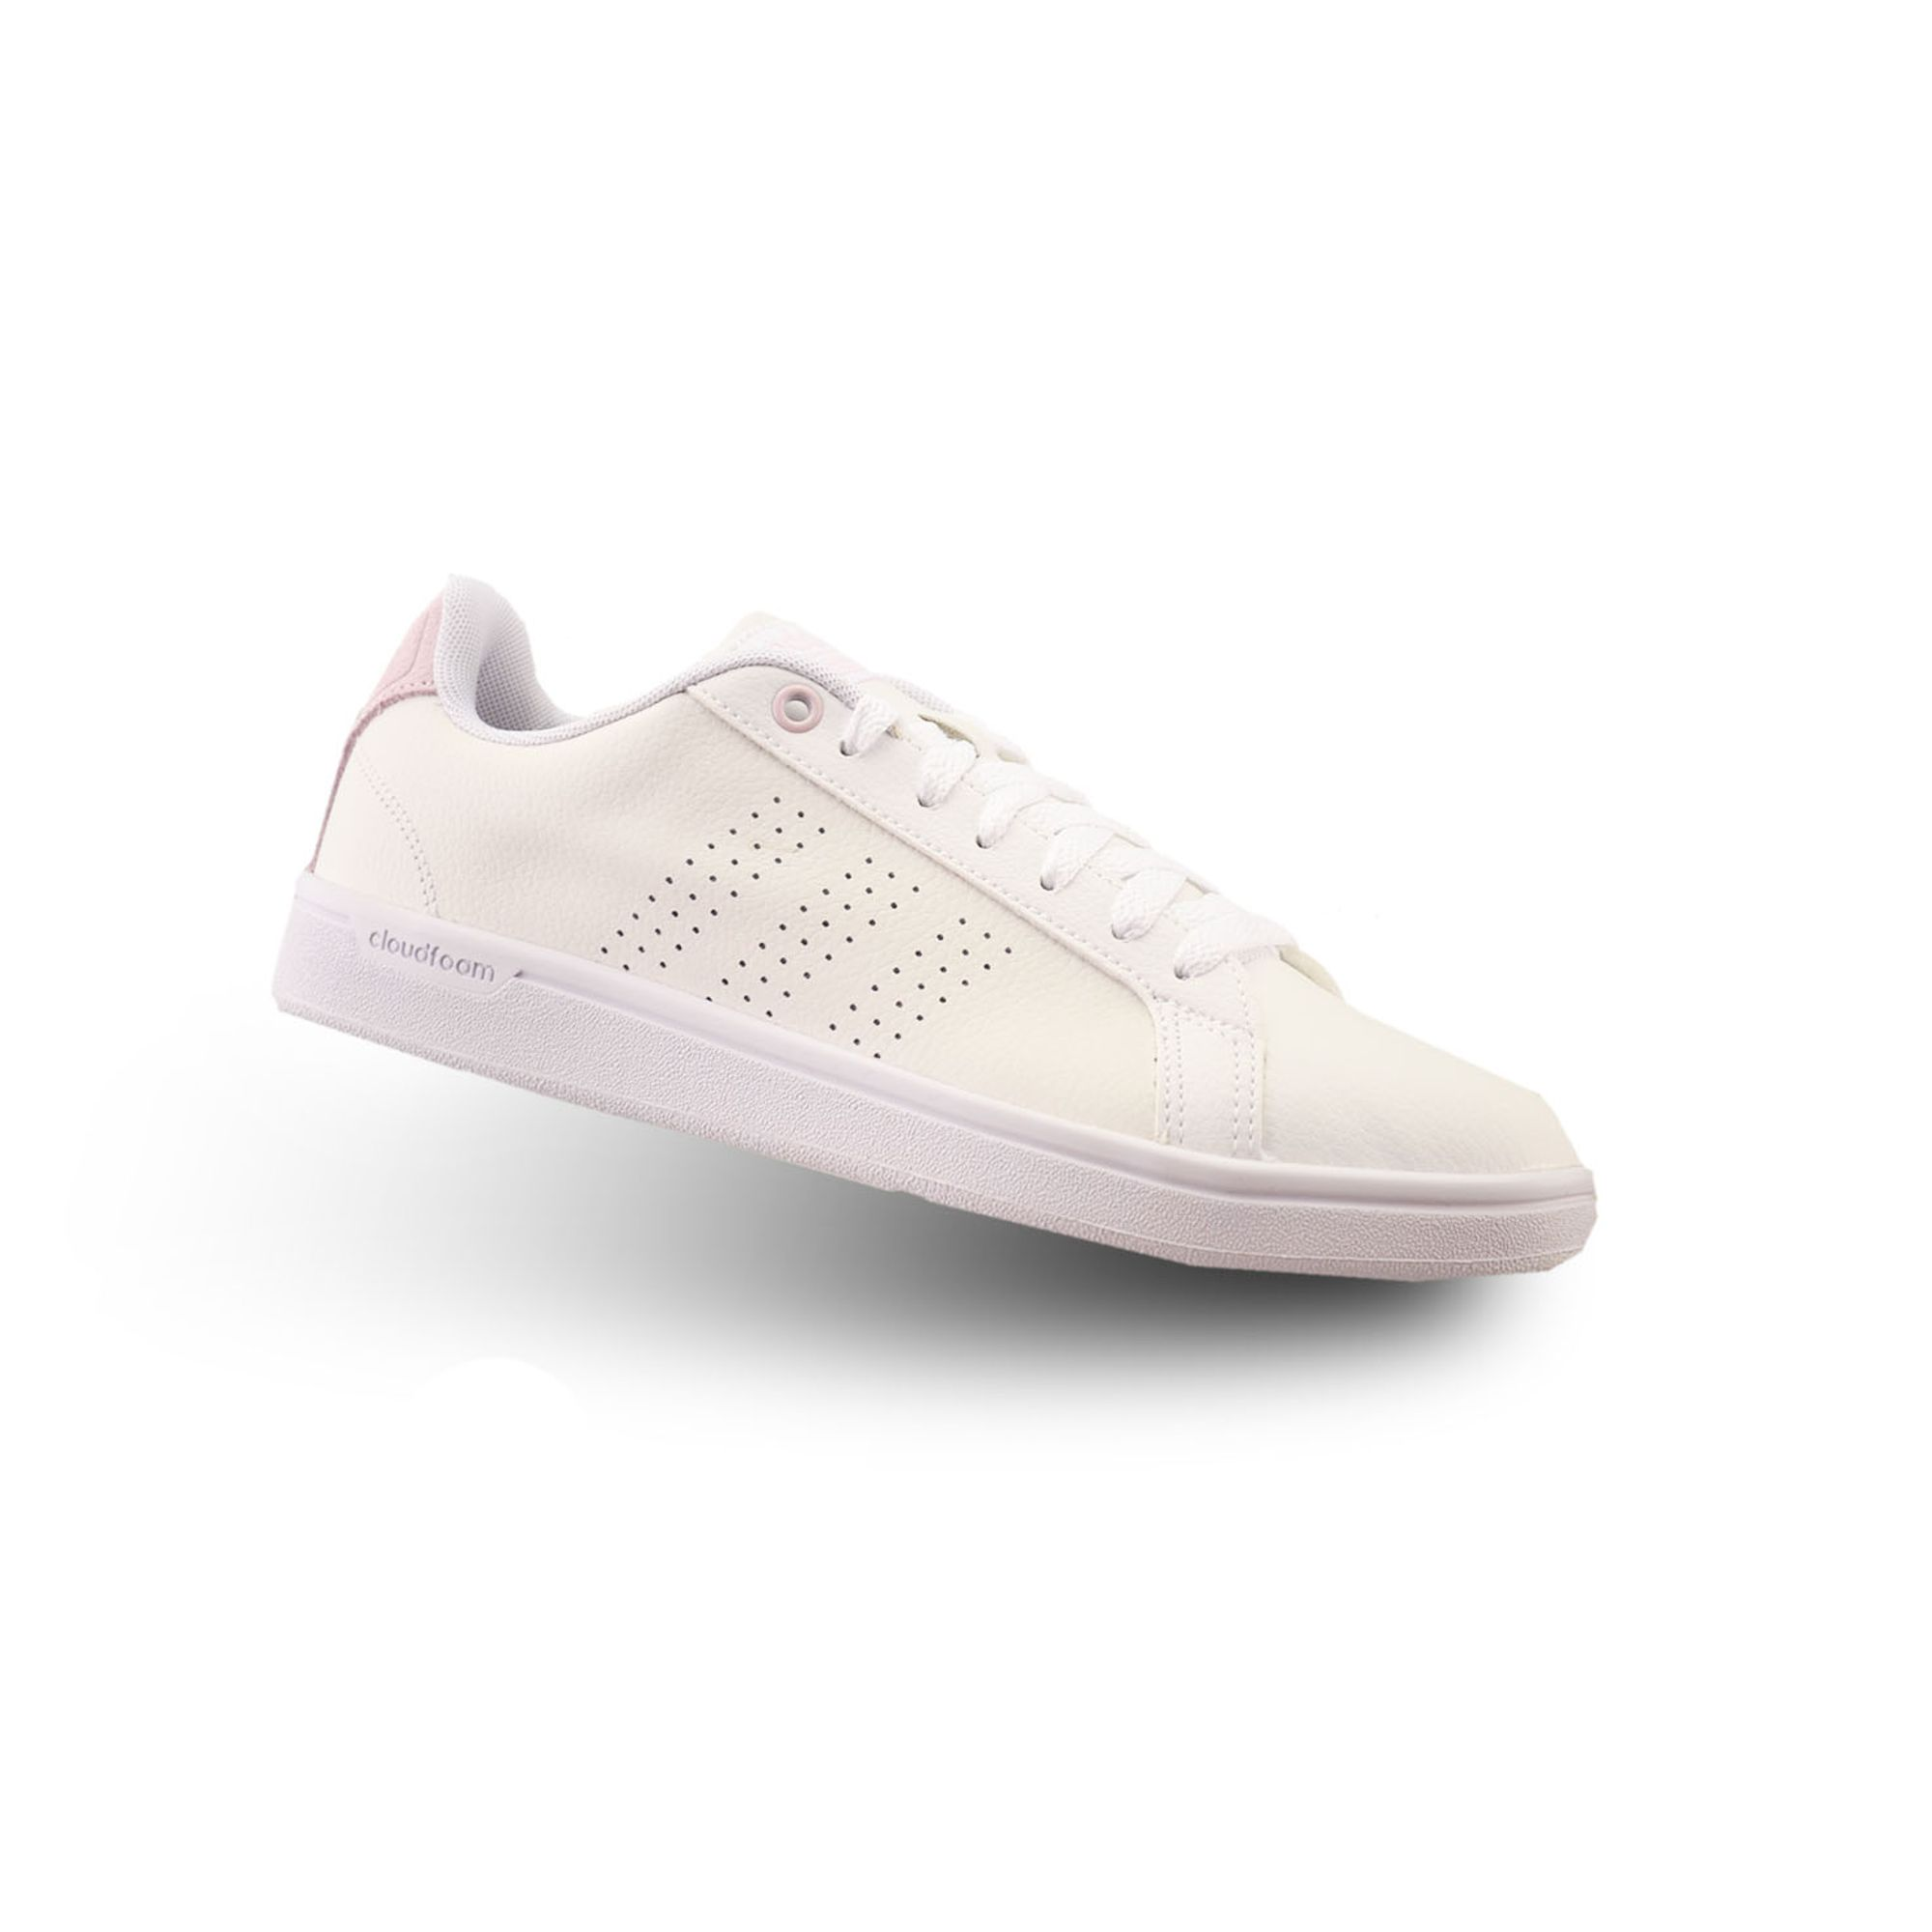 57e9d9967d1fa ZAPATILLAS ADIDAS CLOUDFOAM ADVANTAGE CLEAN MUJER - redsport